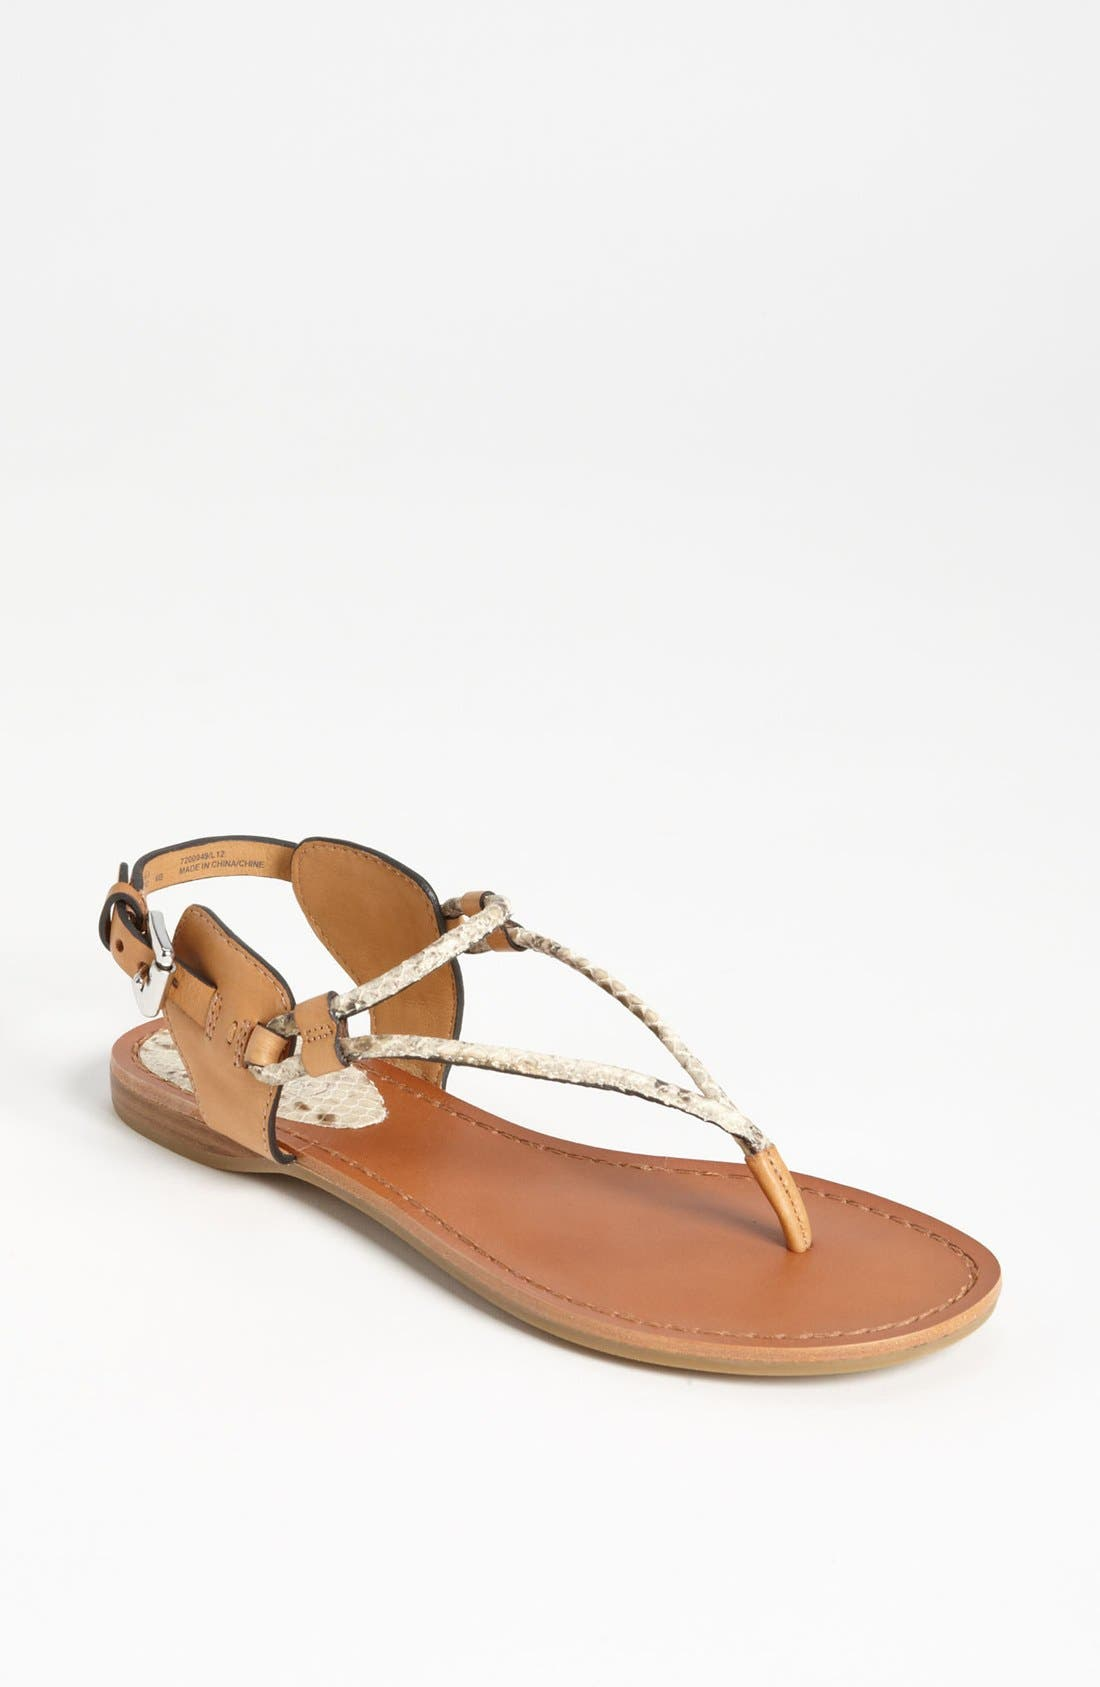 Alternate Image 1 Selected - COACH 'Coco' Sandal